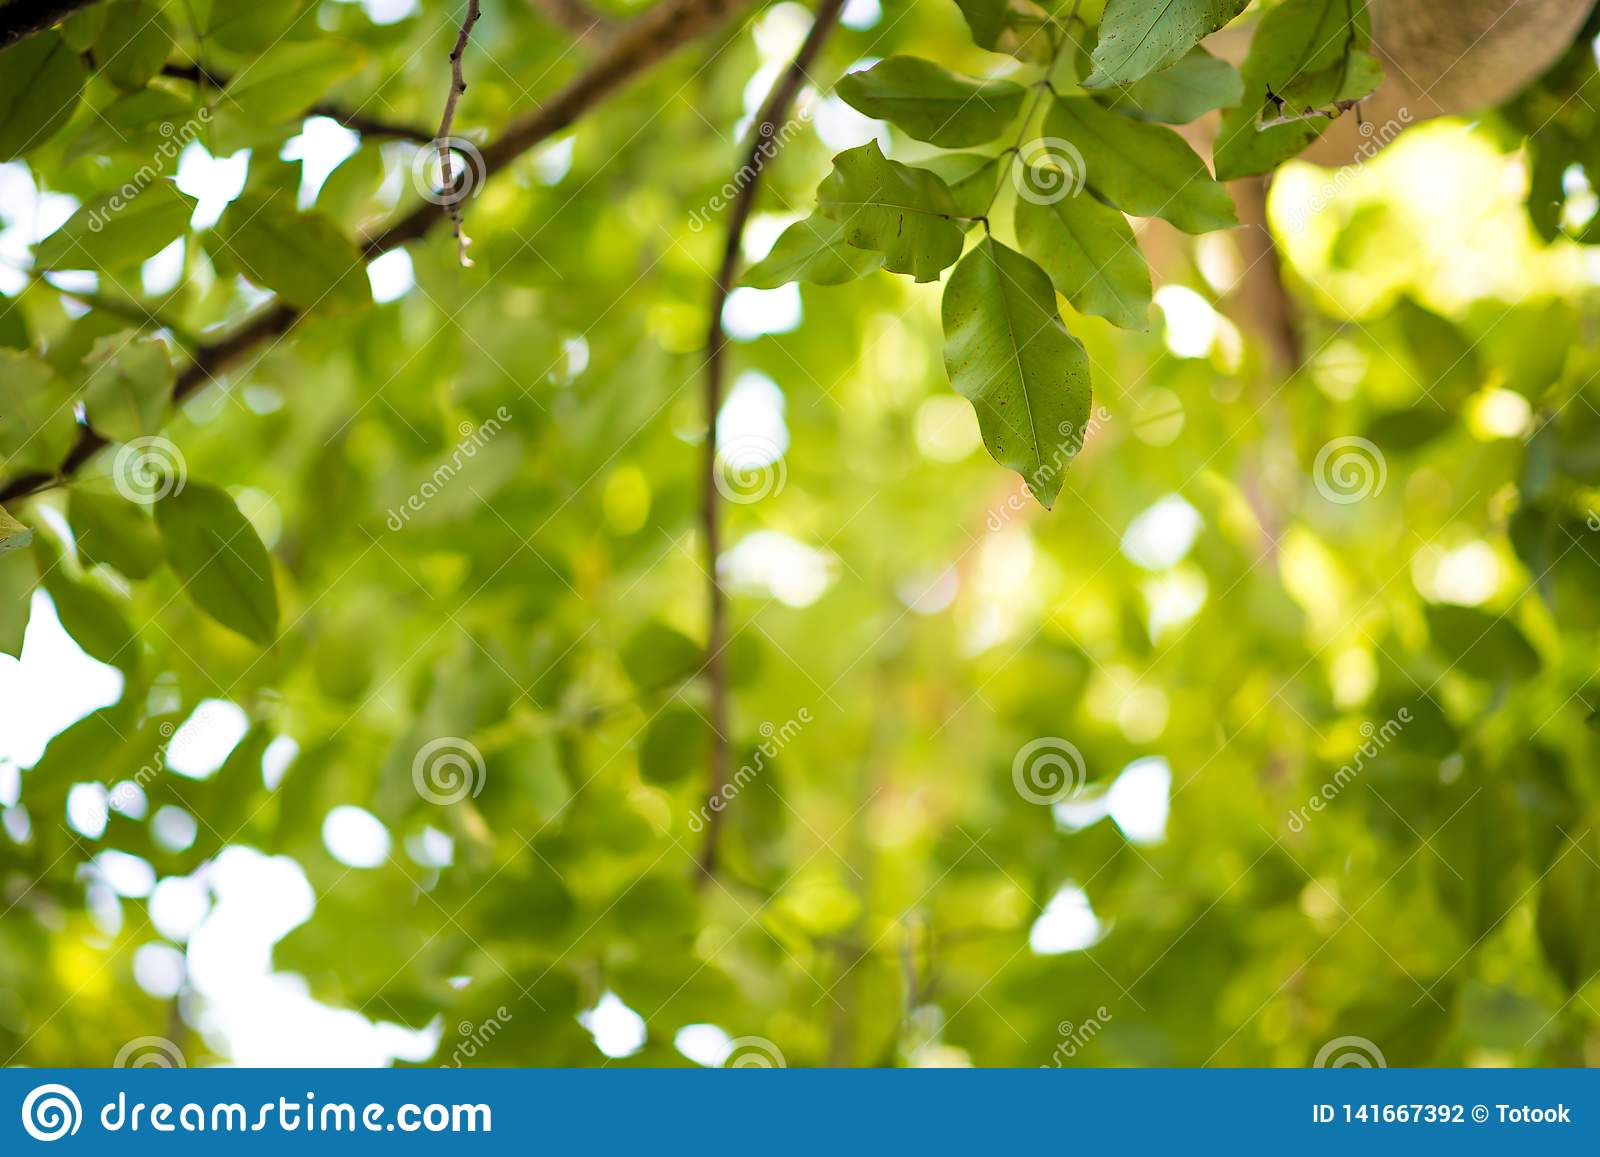 Abstract Nature Green Leaf Background And Beautiful Wallpaper Stock Photo Image Of Floral Forest 141667392 Download premium vector of blank rectangle leafy frame vector by ningzk v. dreamstime com